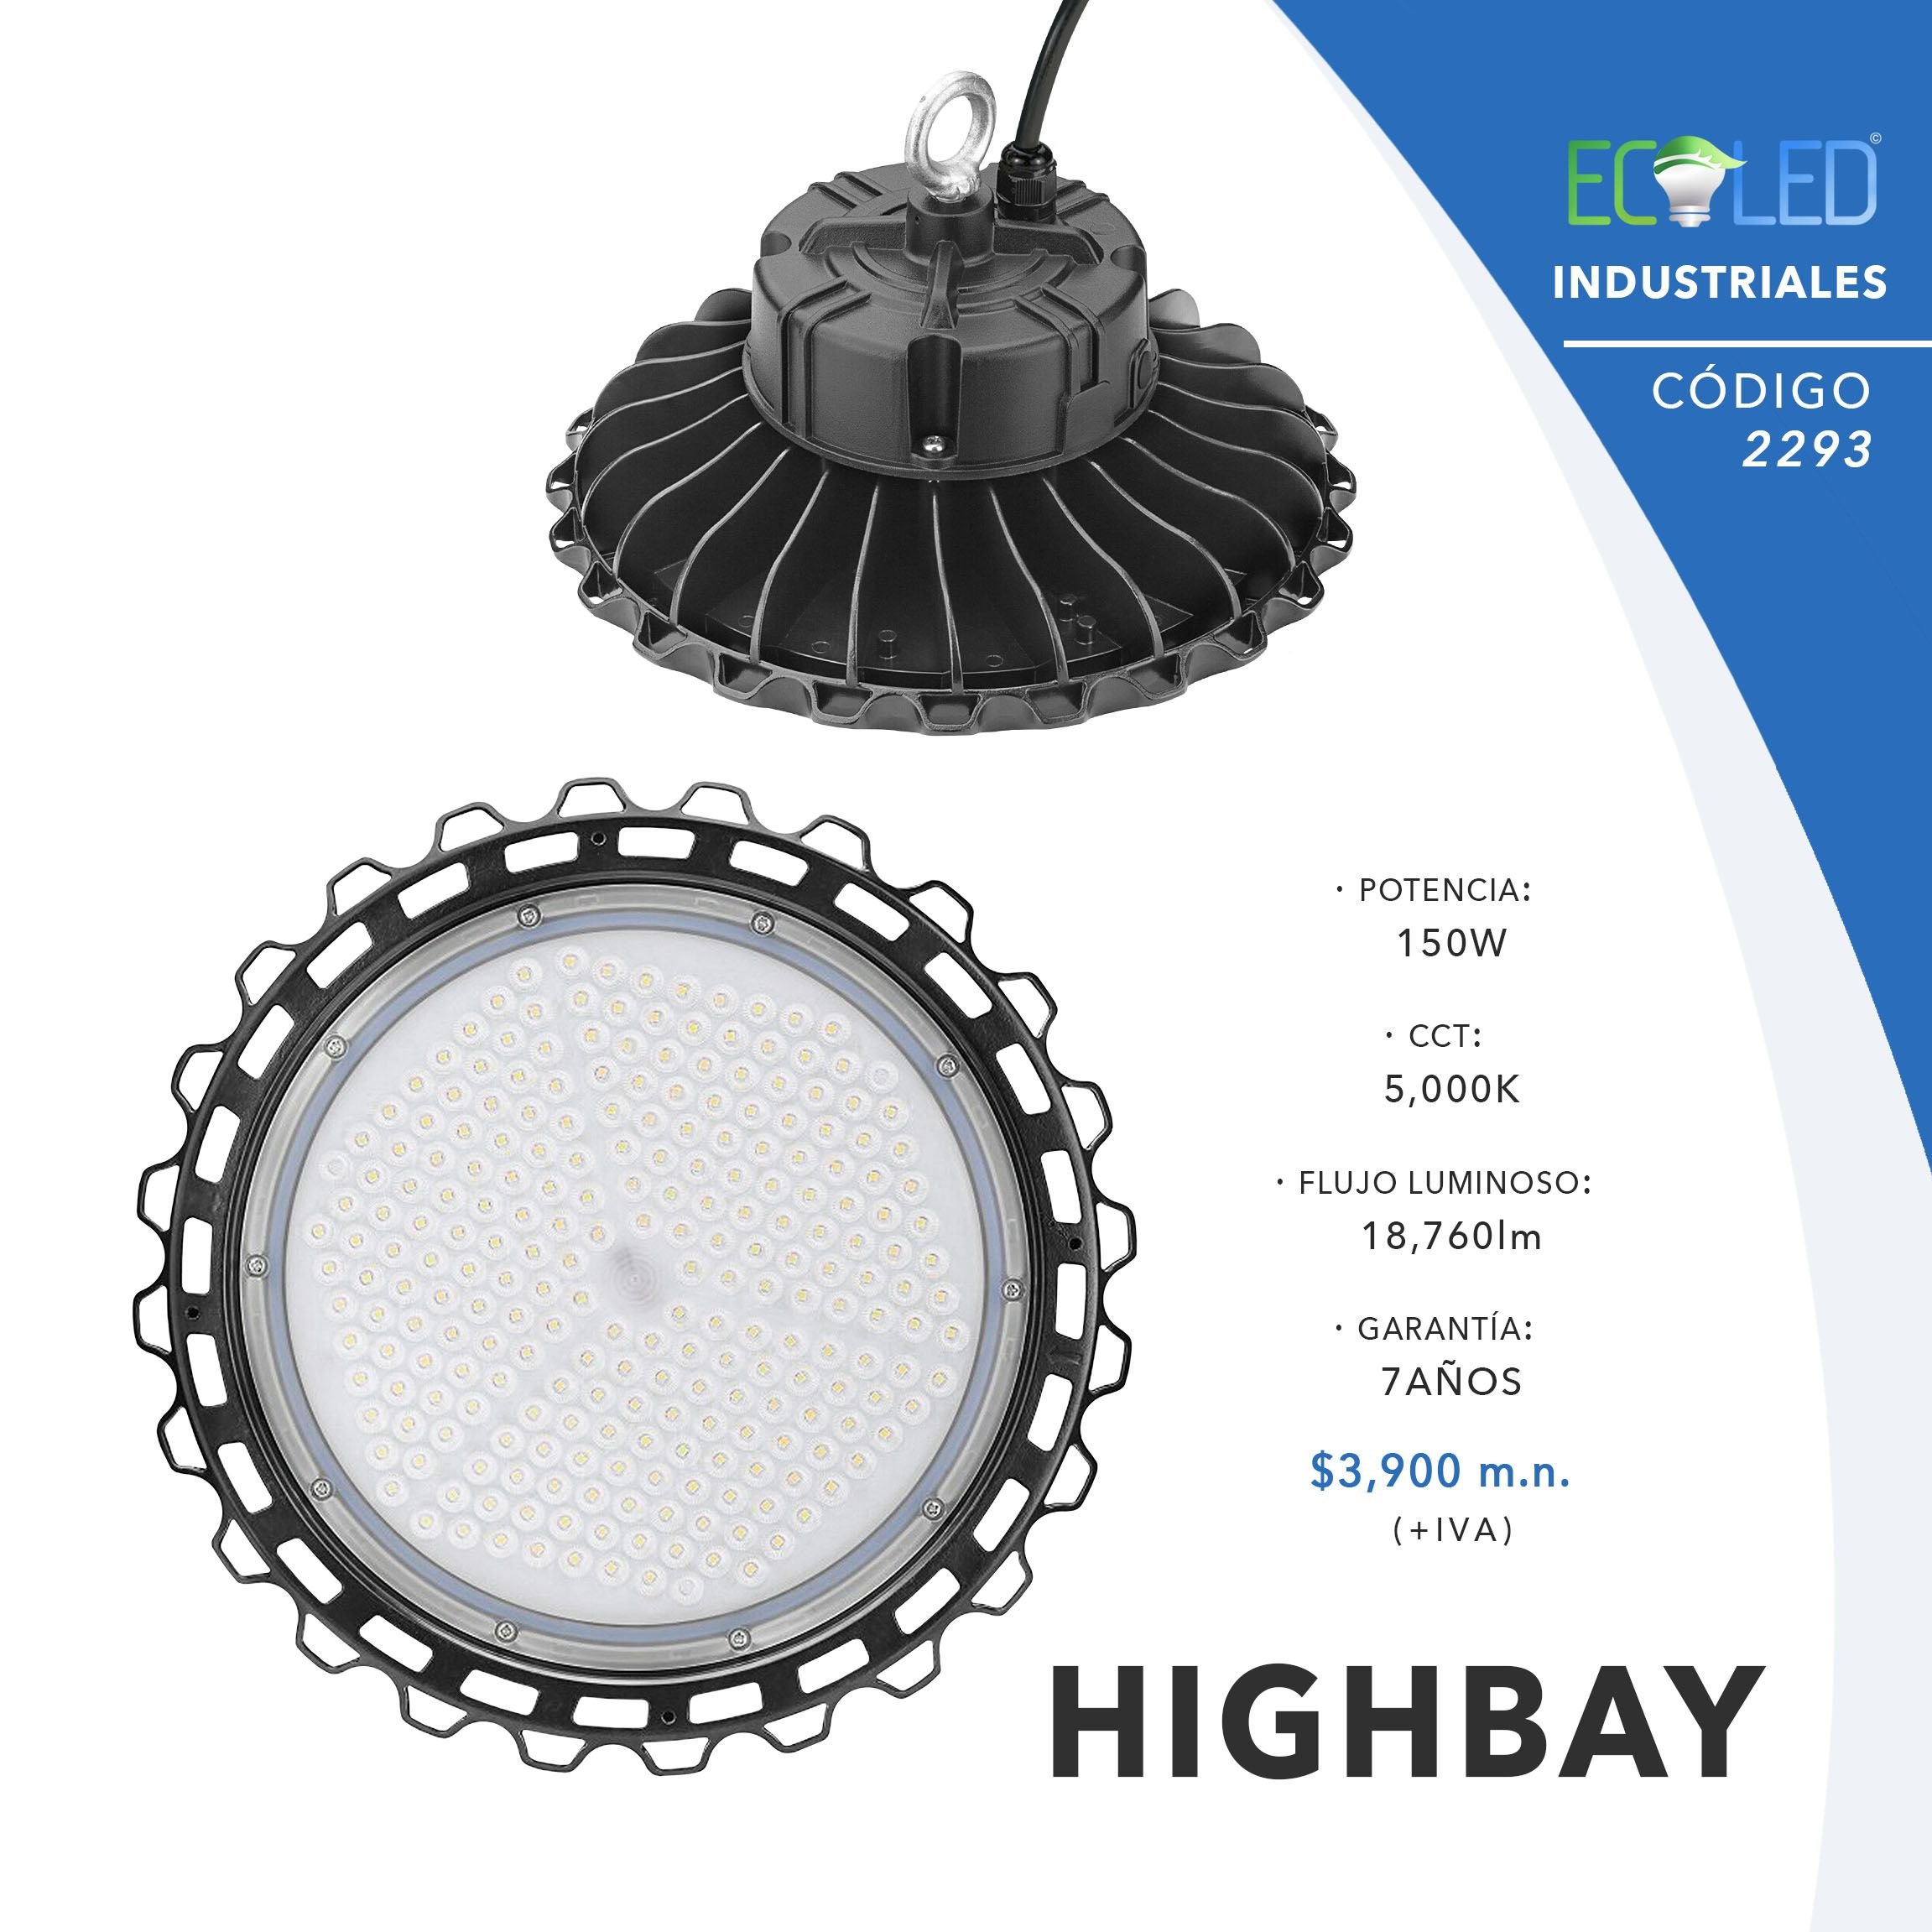 2293-UFO LED HIGHBAY-150W